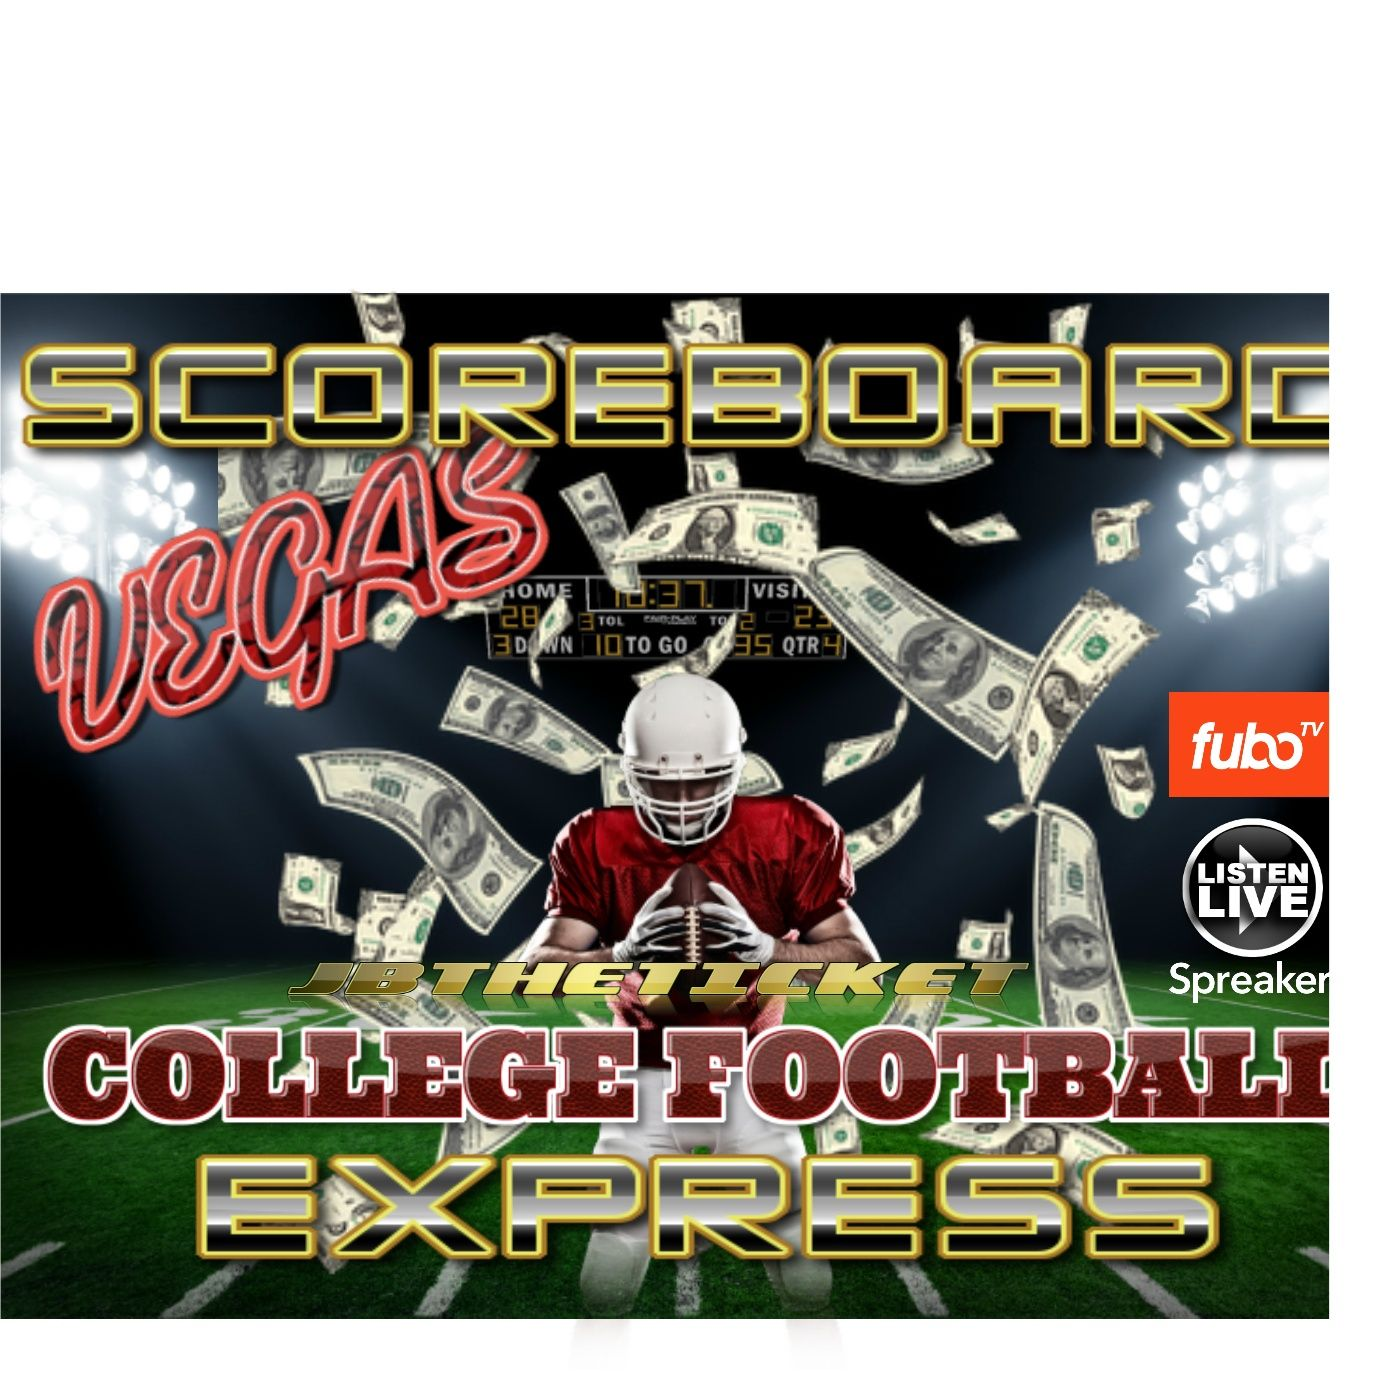 Miami FL v UNC Tarheels - Dreford All Day Smith - ACCvSEC-Sports Betting